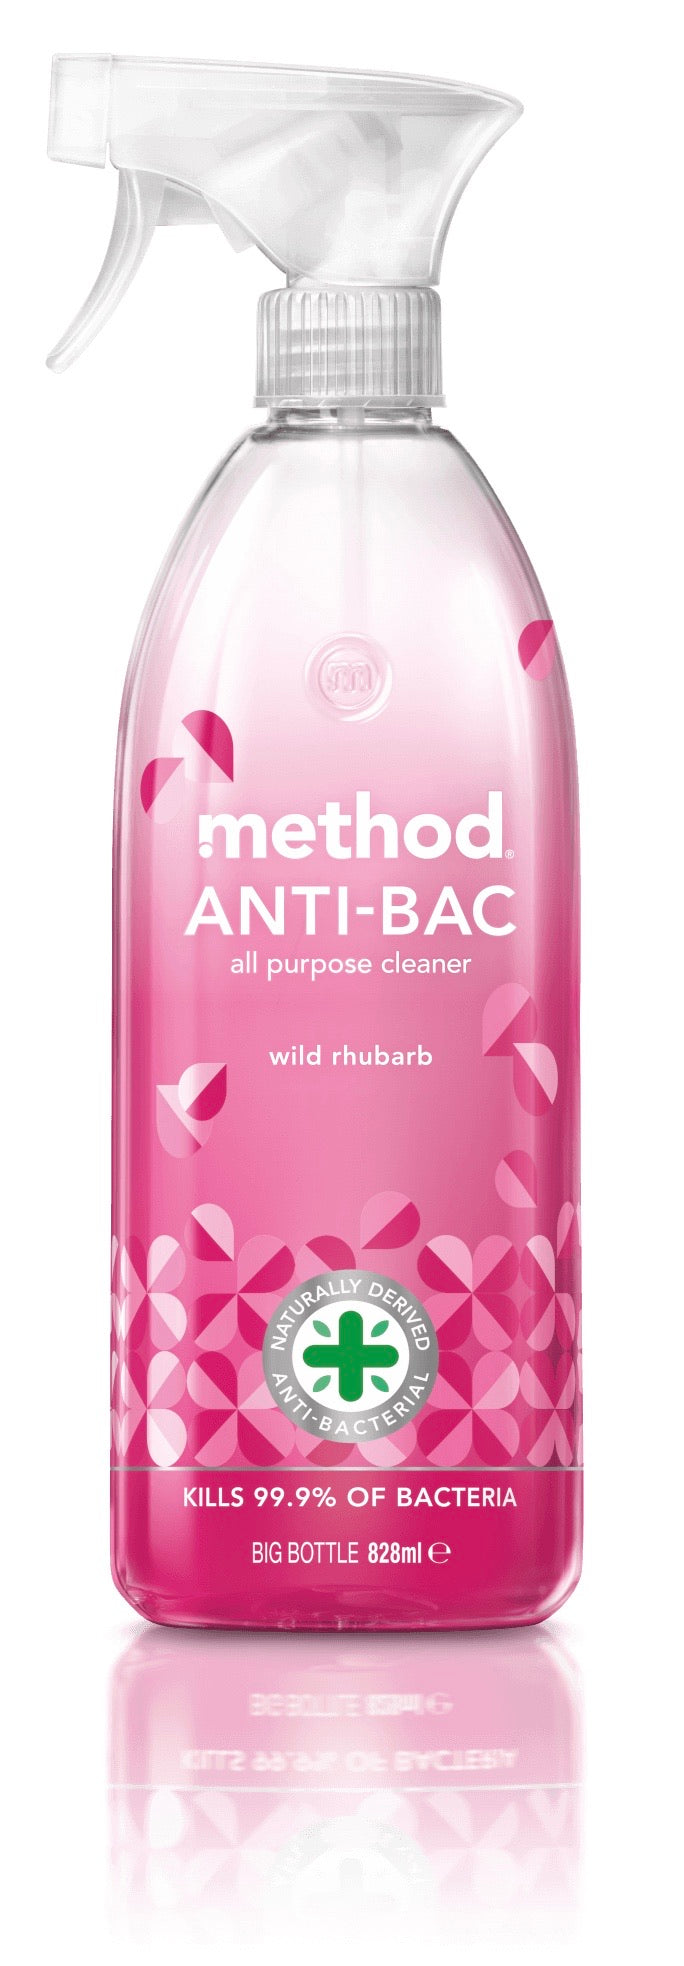 Anti-Bac All Purpose Cleaner, Method (828ml)